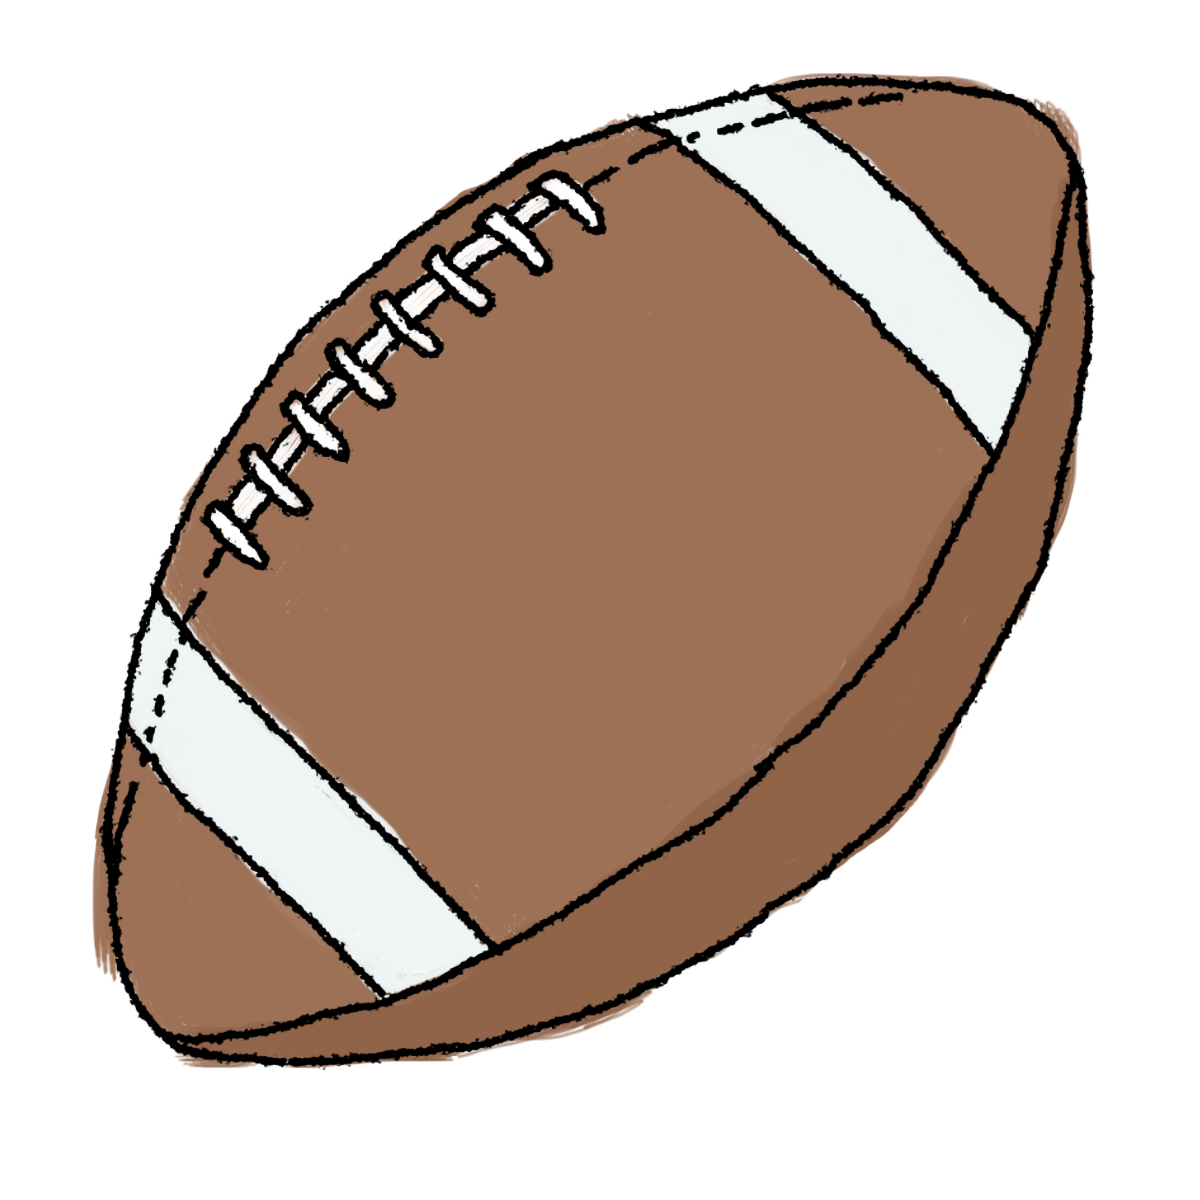 1200x1200 Superbowl Drawing Football Ball Transparent Png Clipart Free